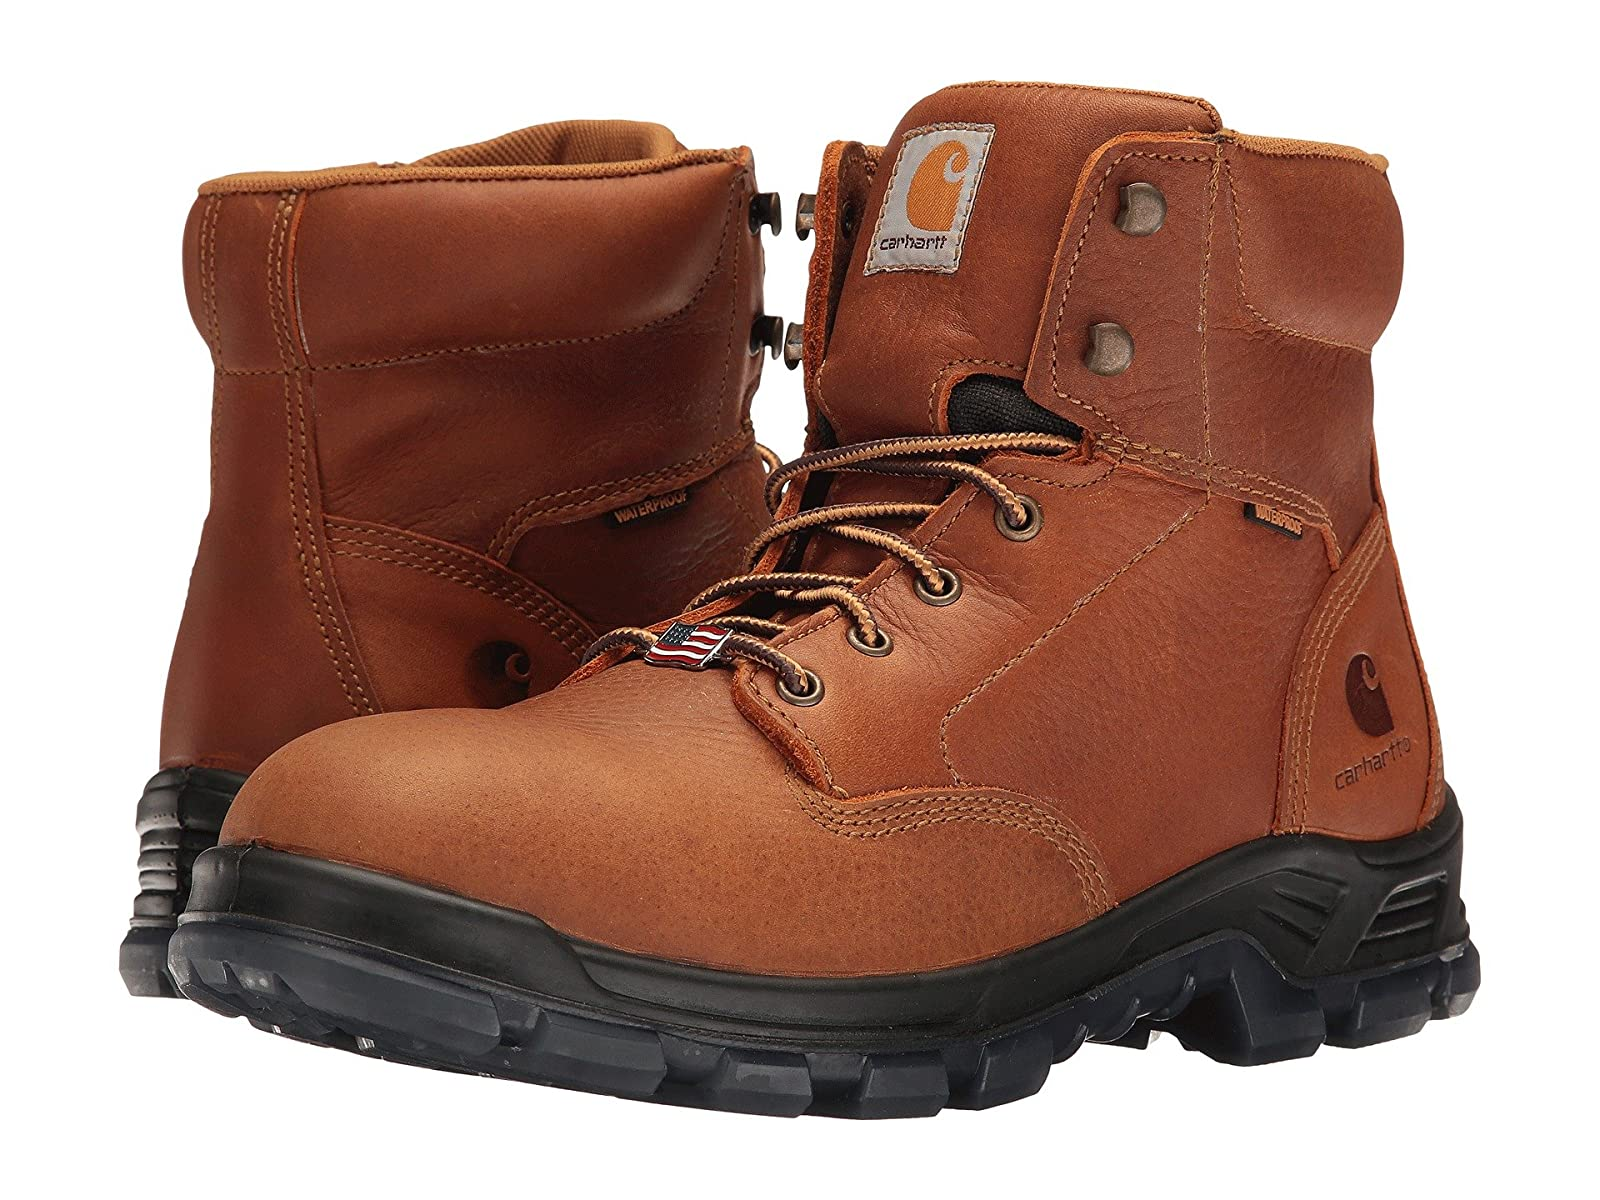 "Carhartt 6"" Waterproof Work BootSelling fashionable and eye-catching shoes"